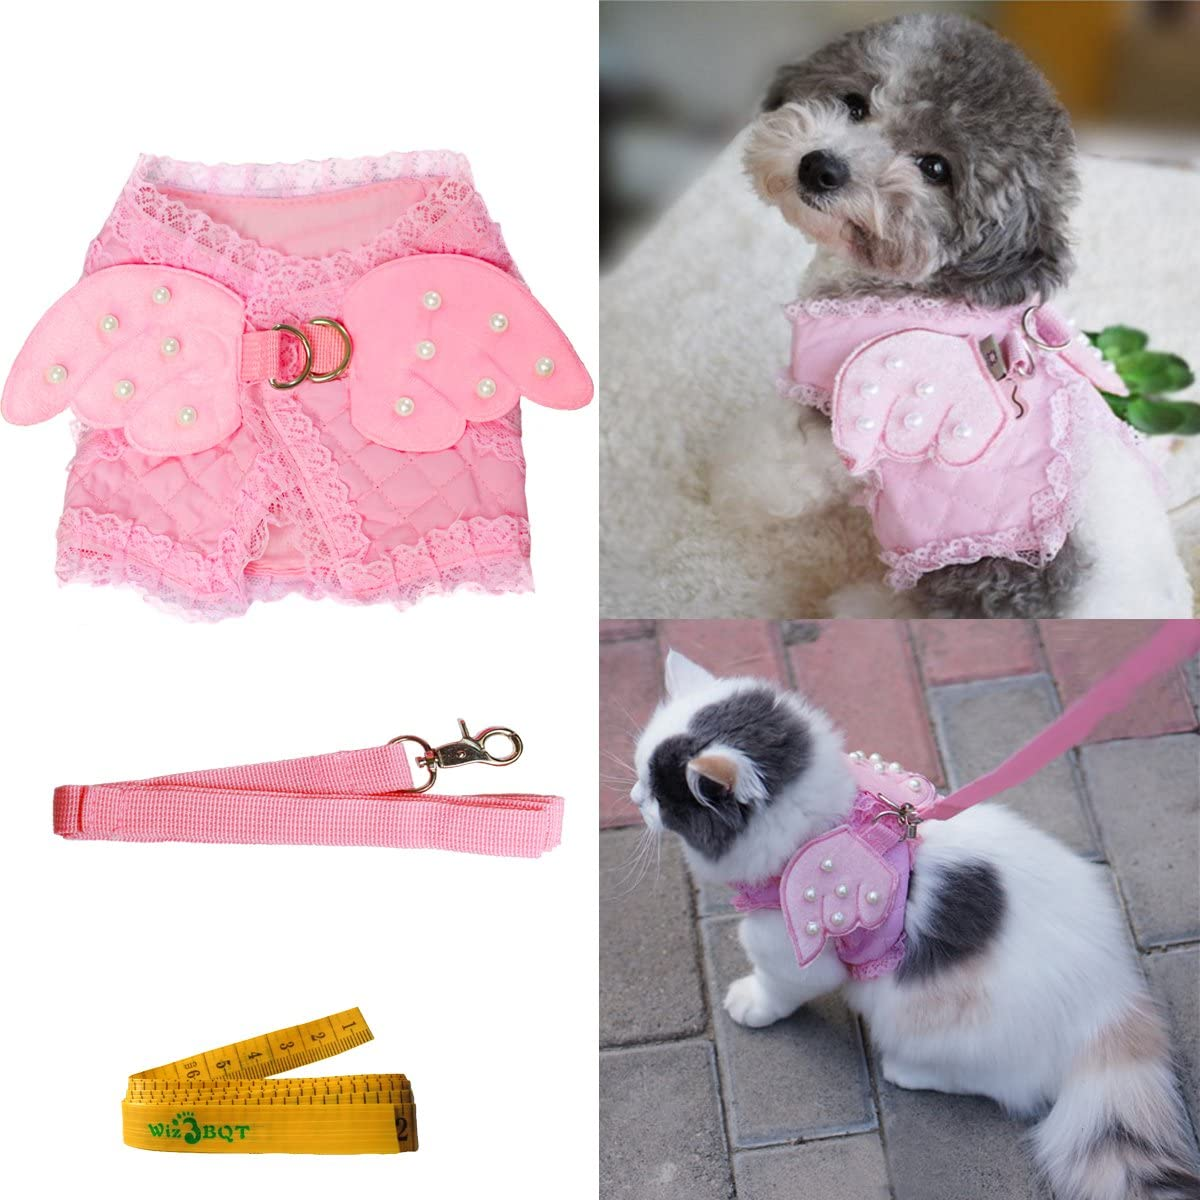 Pet Supplies Pink Cute Adorable Pet Cat Dog Harness And Leash Set With Lace Artificial Pearl Angel Wing Small Amazon Com